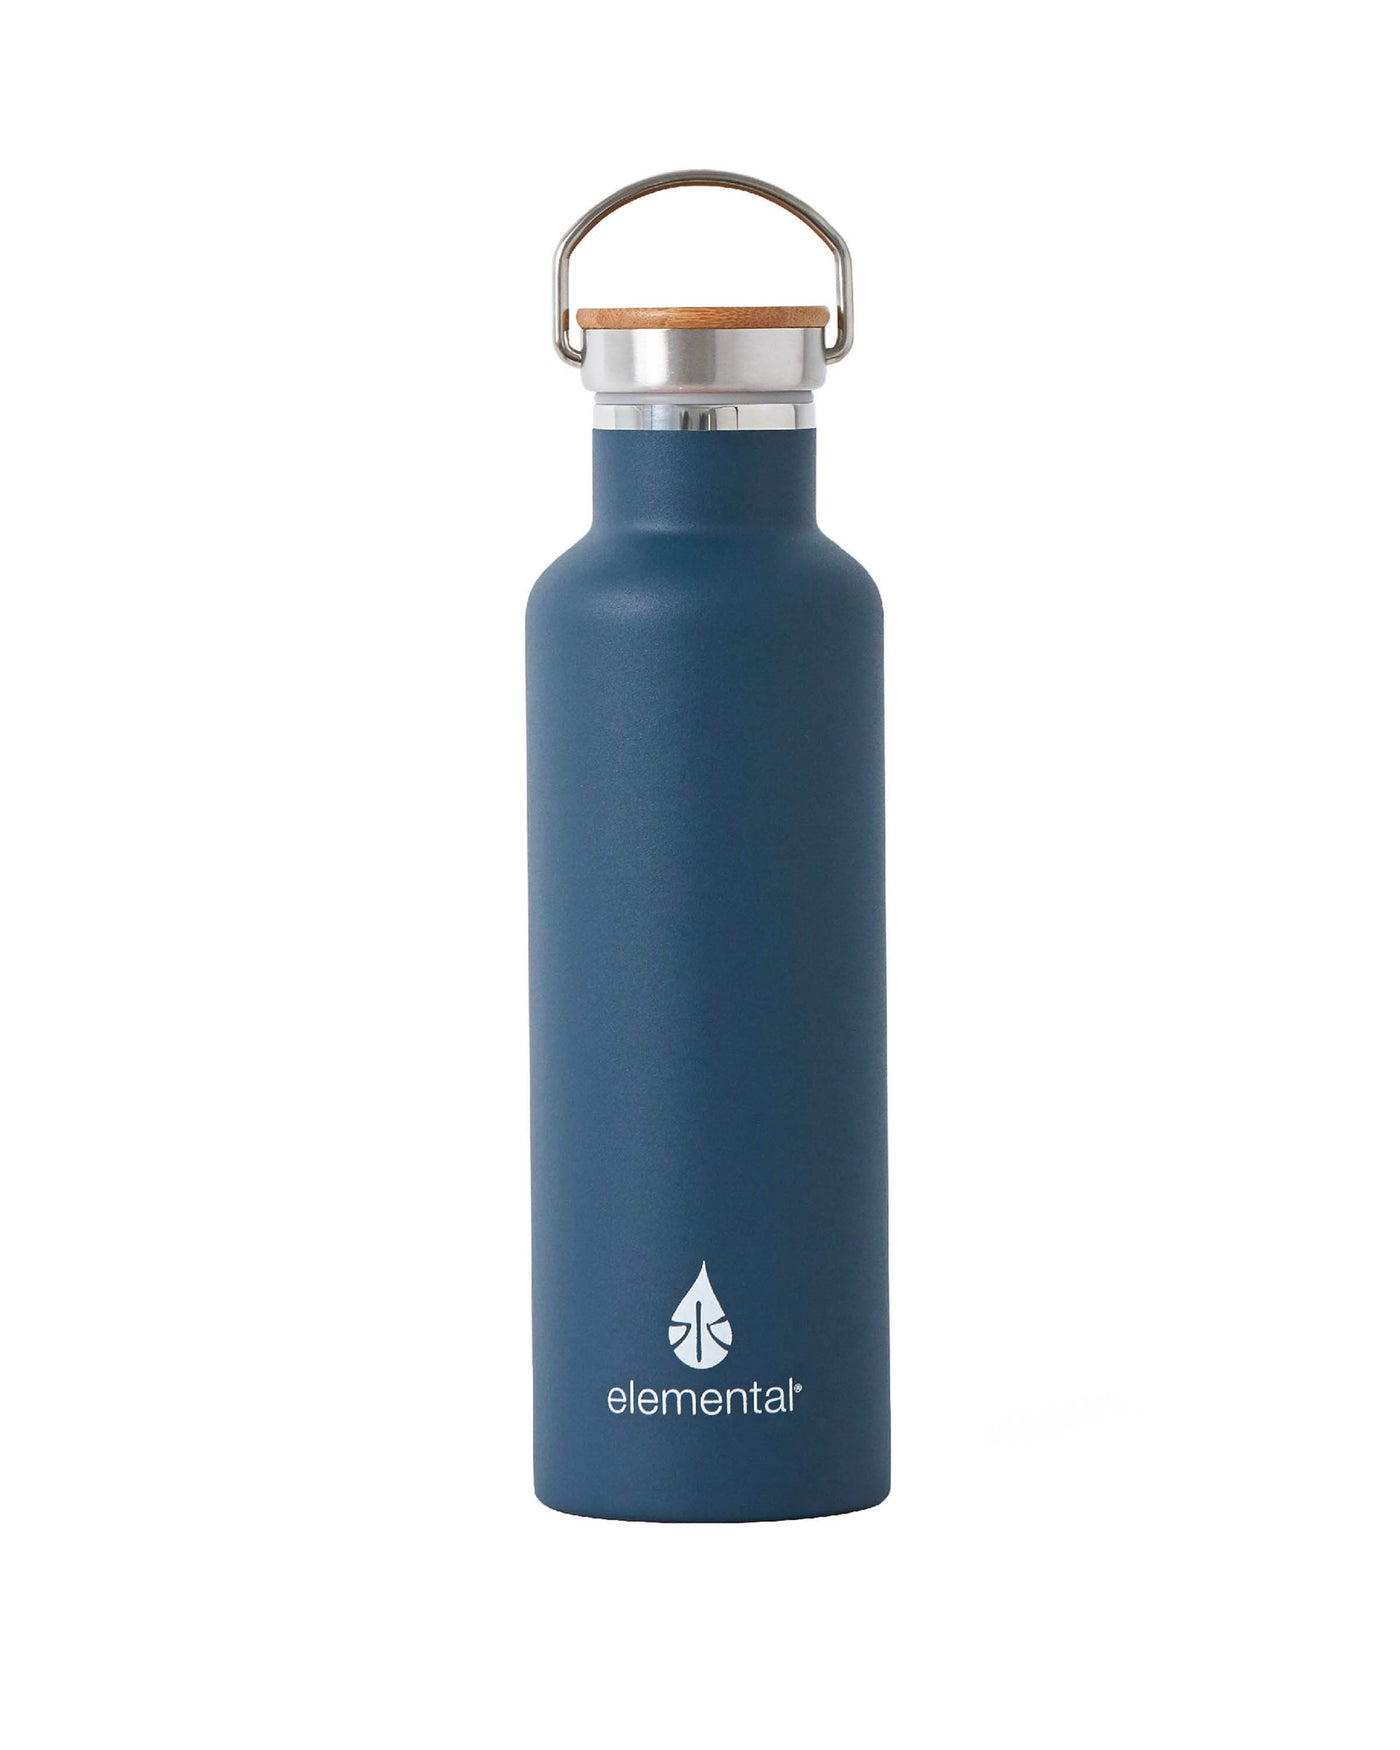 Elemental Stainless Steel Classic Water Bottle - 25oz Navy Blue - Elemental Gifts